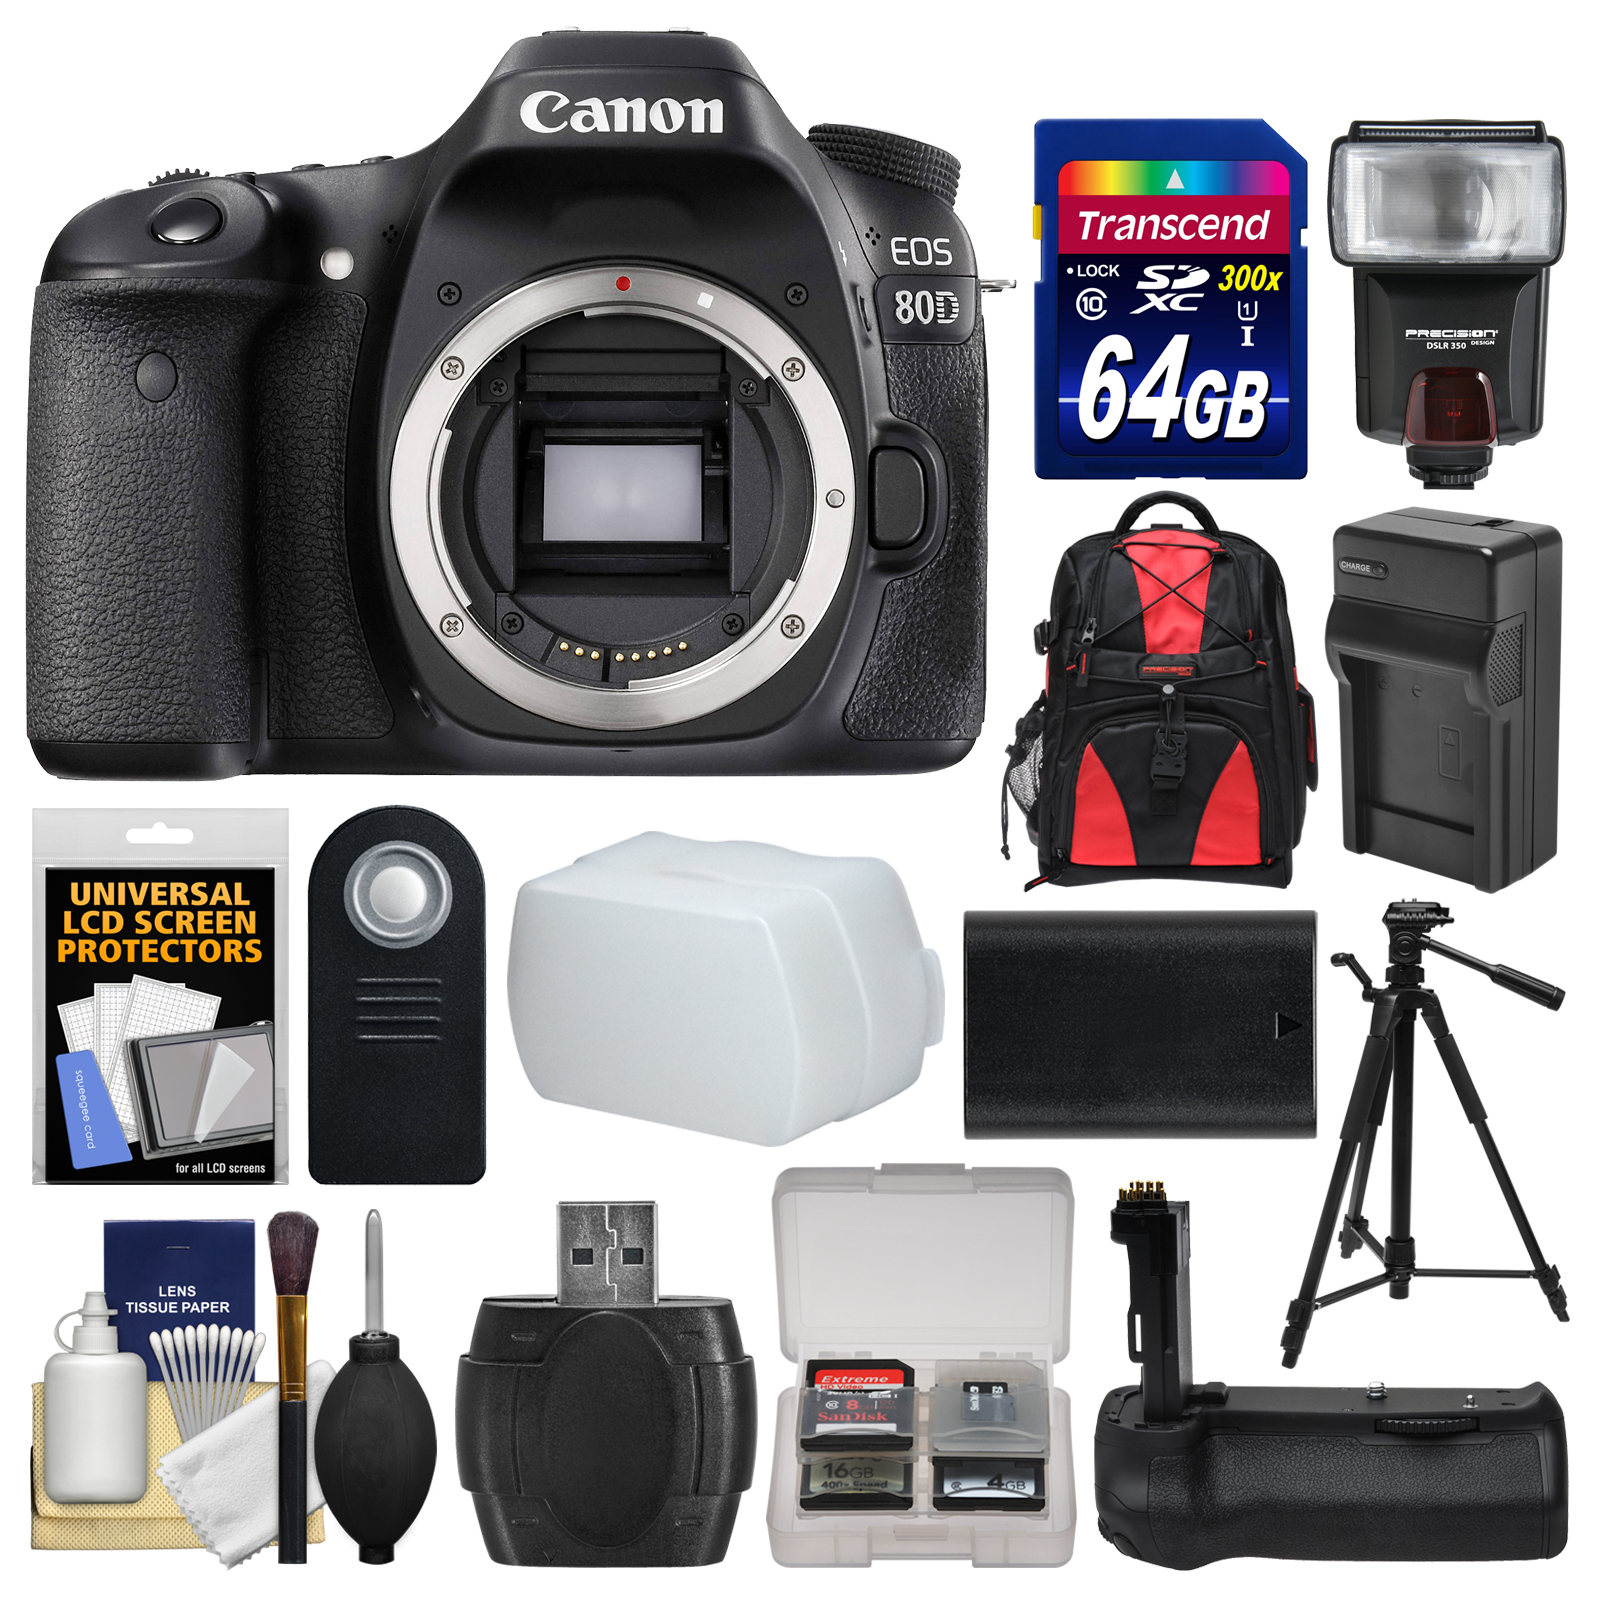 Canon EOS 80D Wi-Fi Digital SLR Camera Body with 64GB Card + Case +